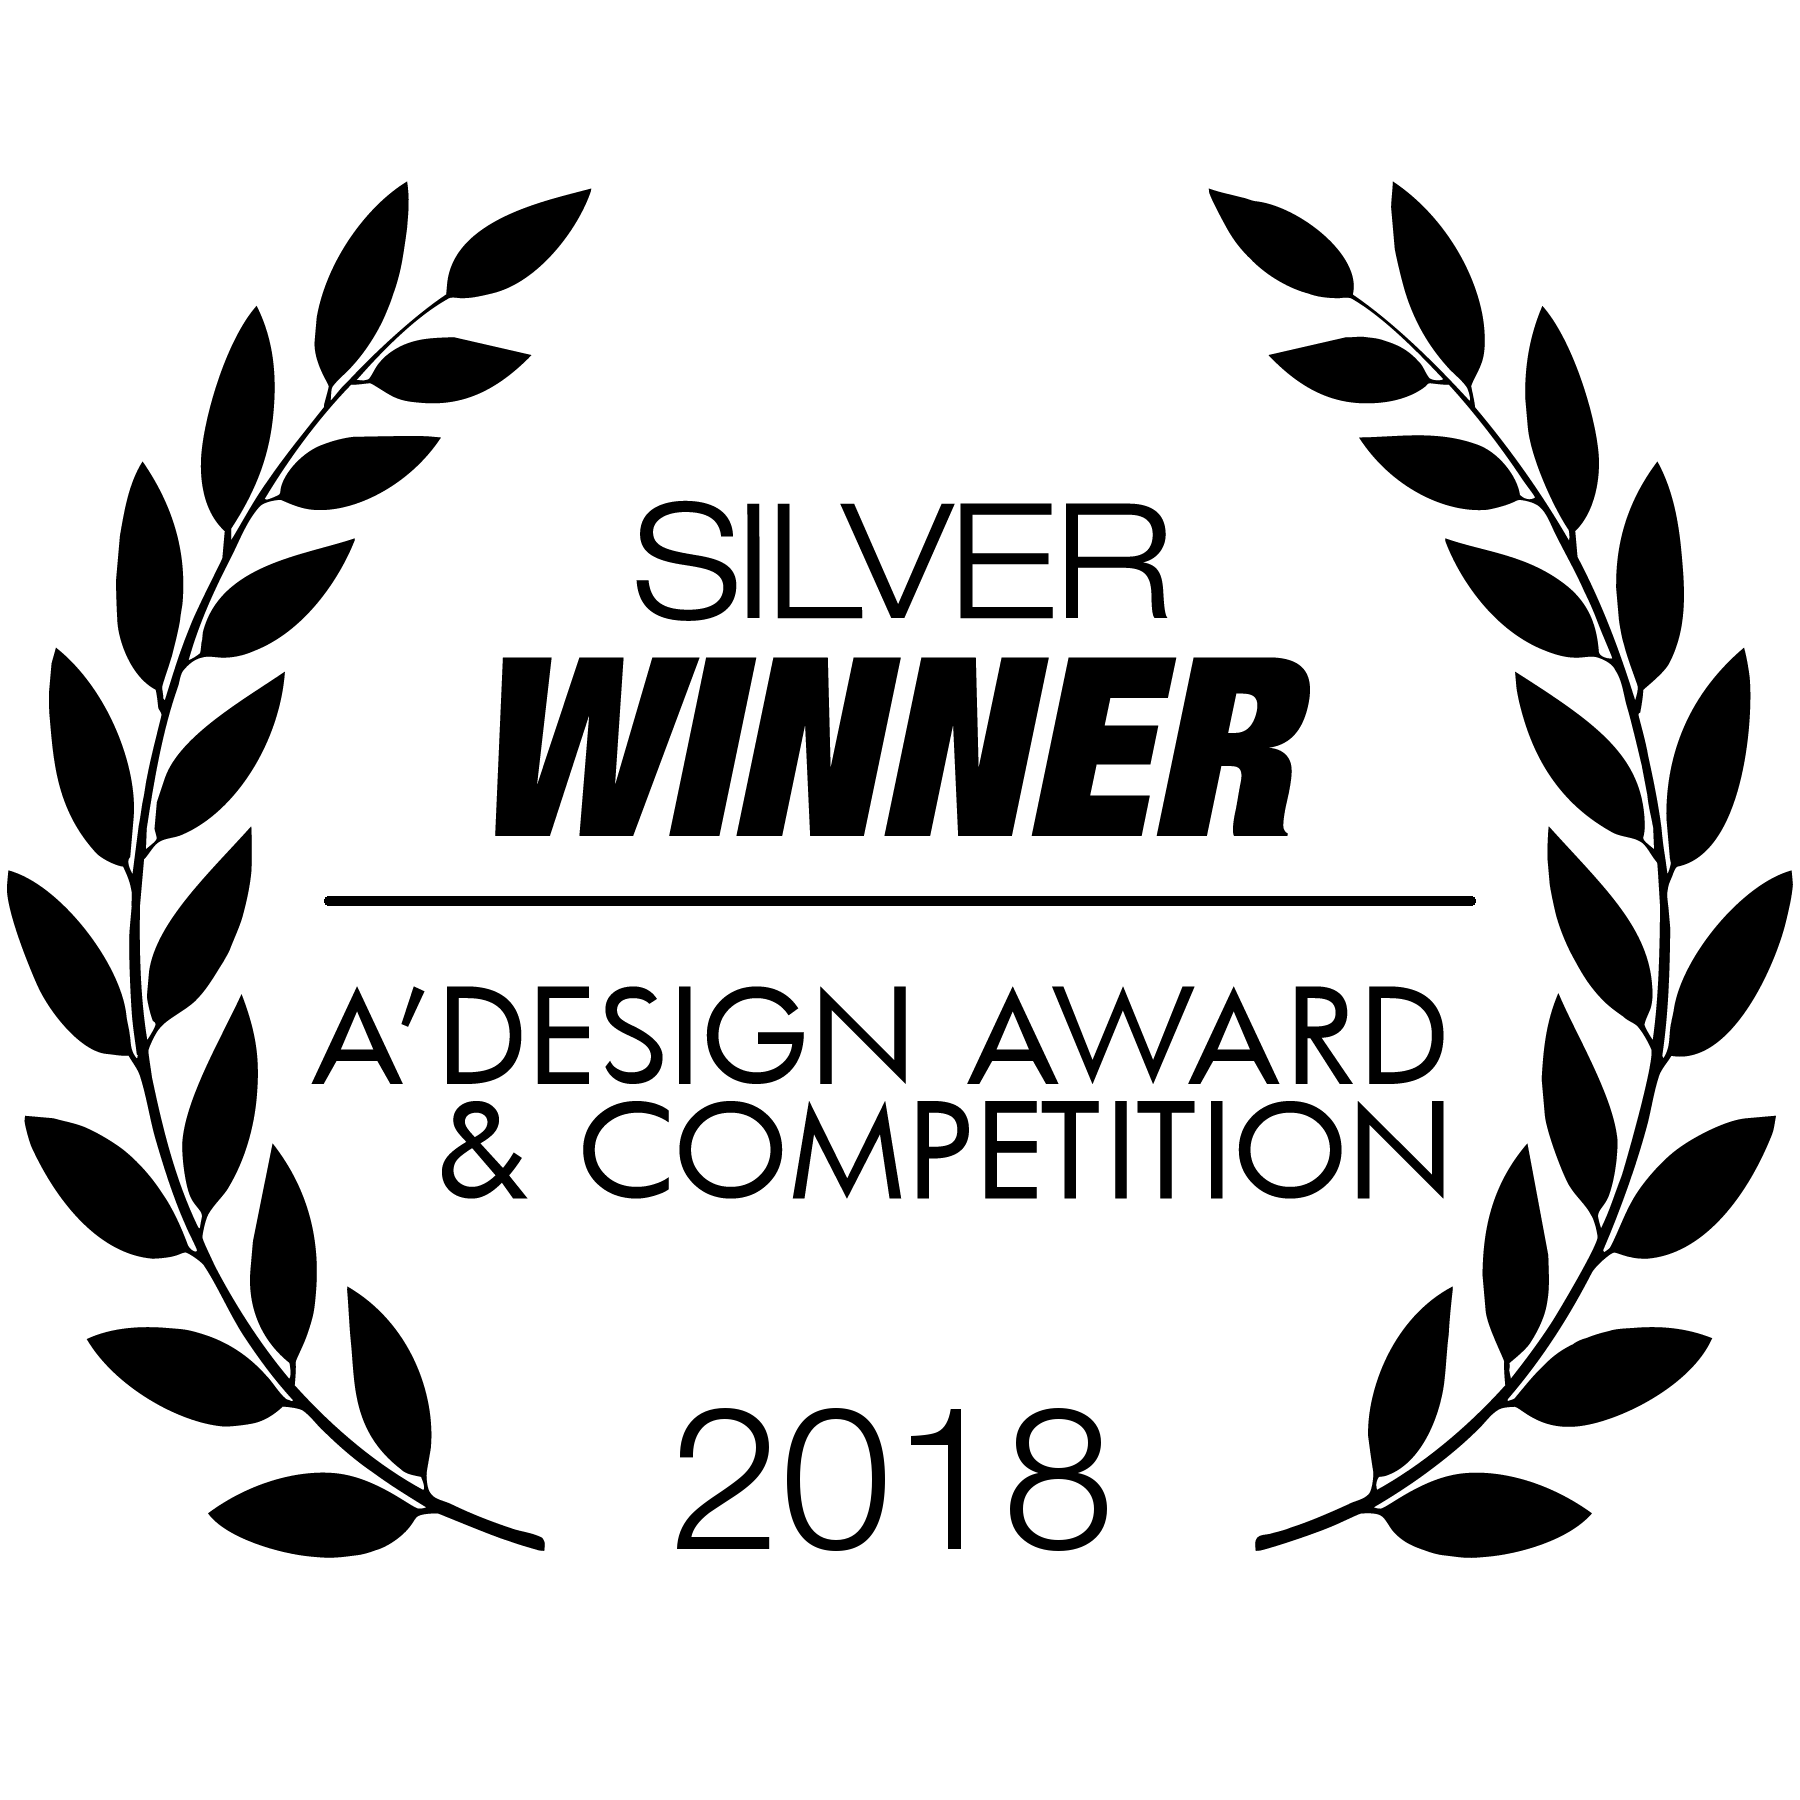 A' Design Award  Our Caffé Medici project on South Lamar won the prestigious Silver A' Design Award.